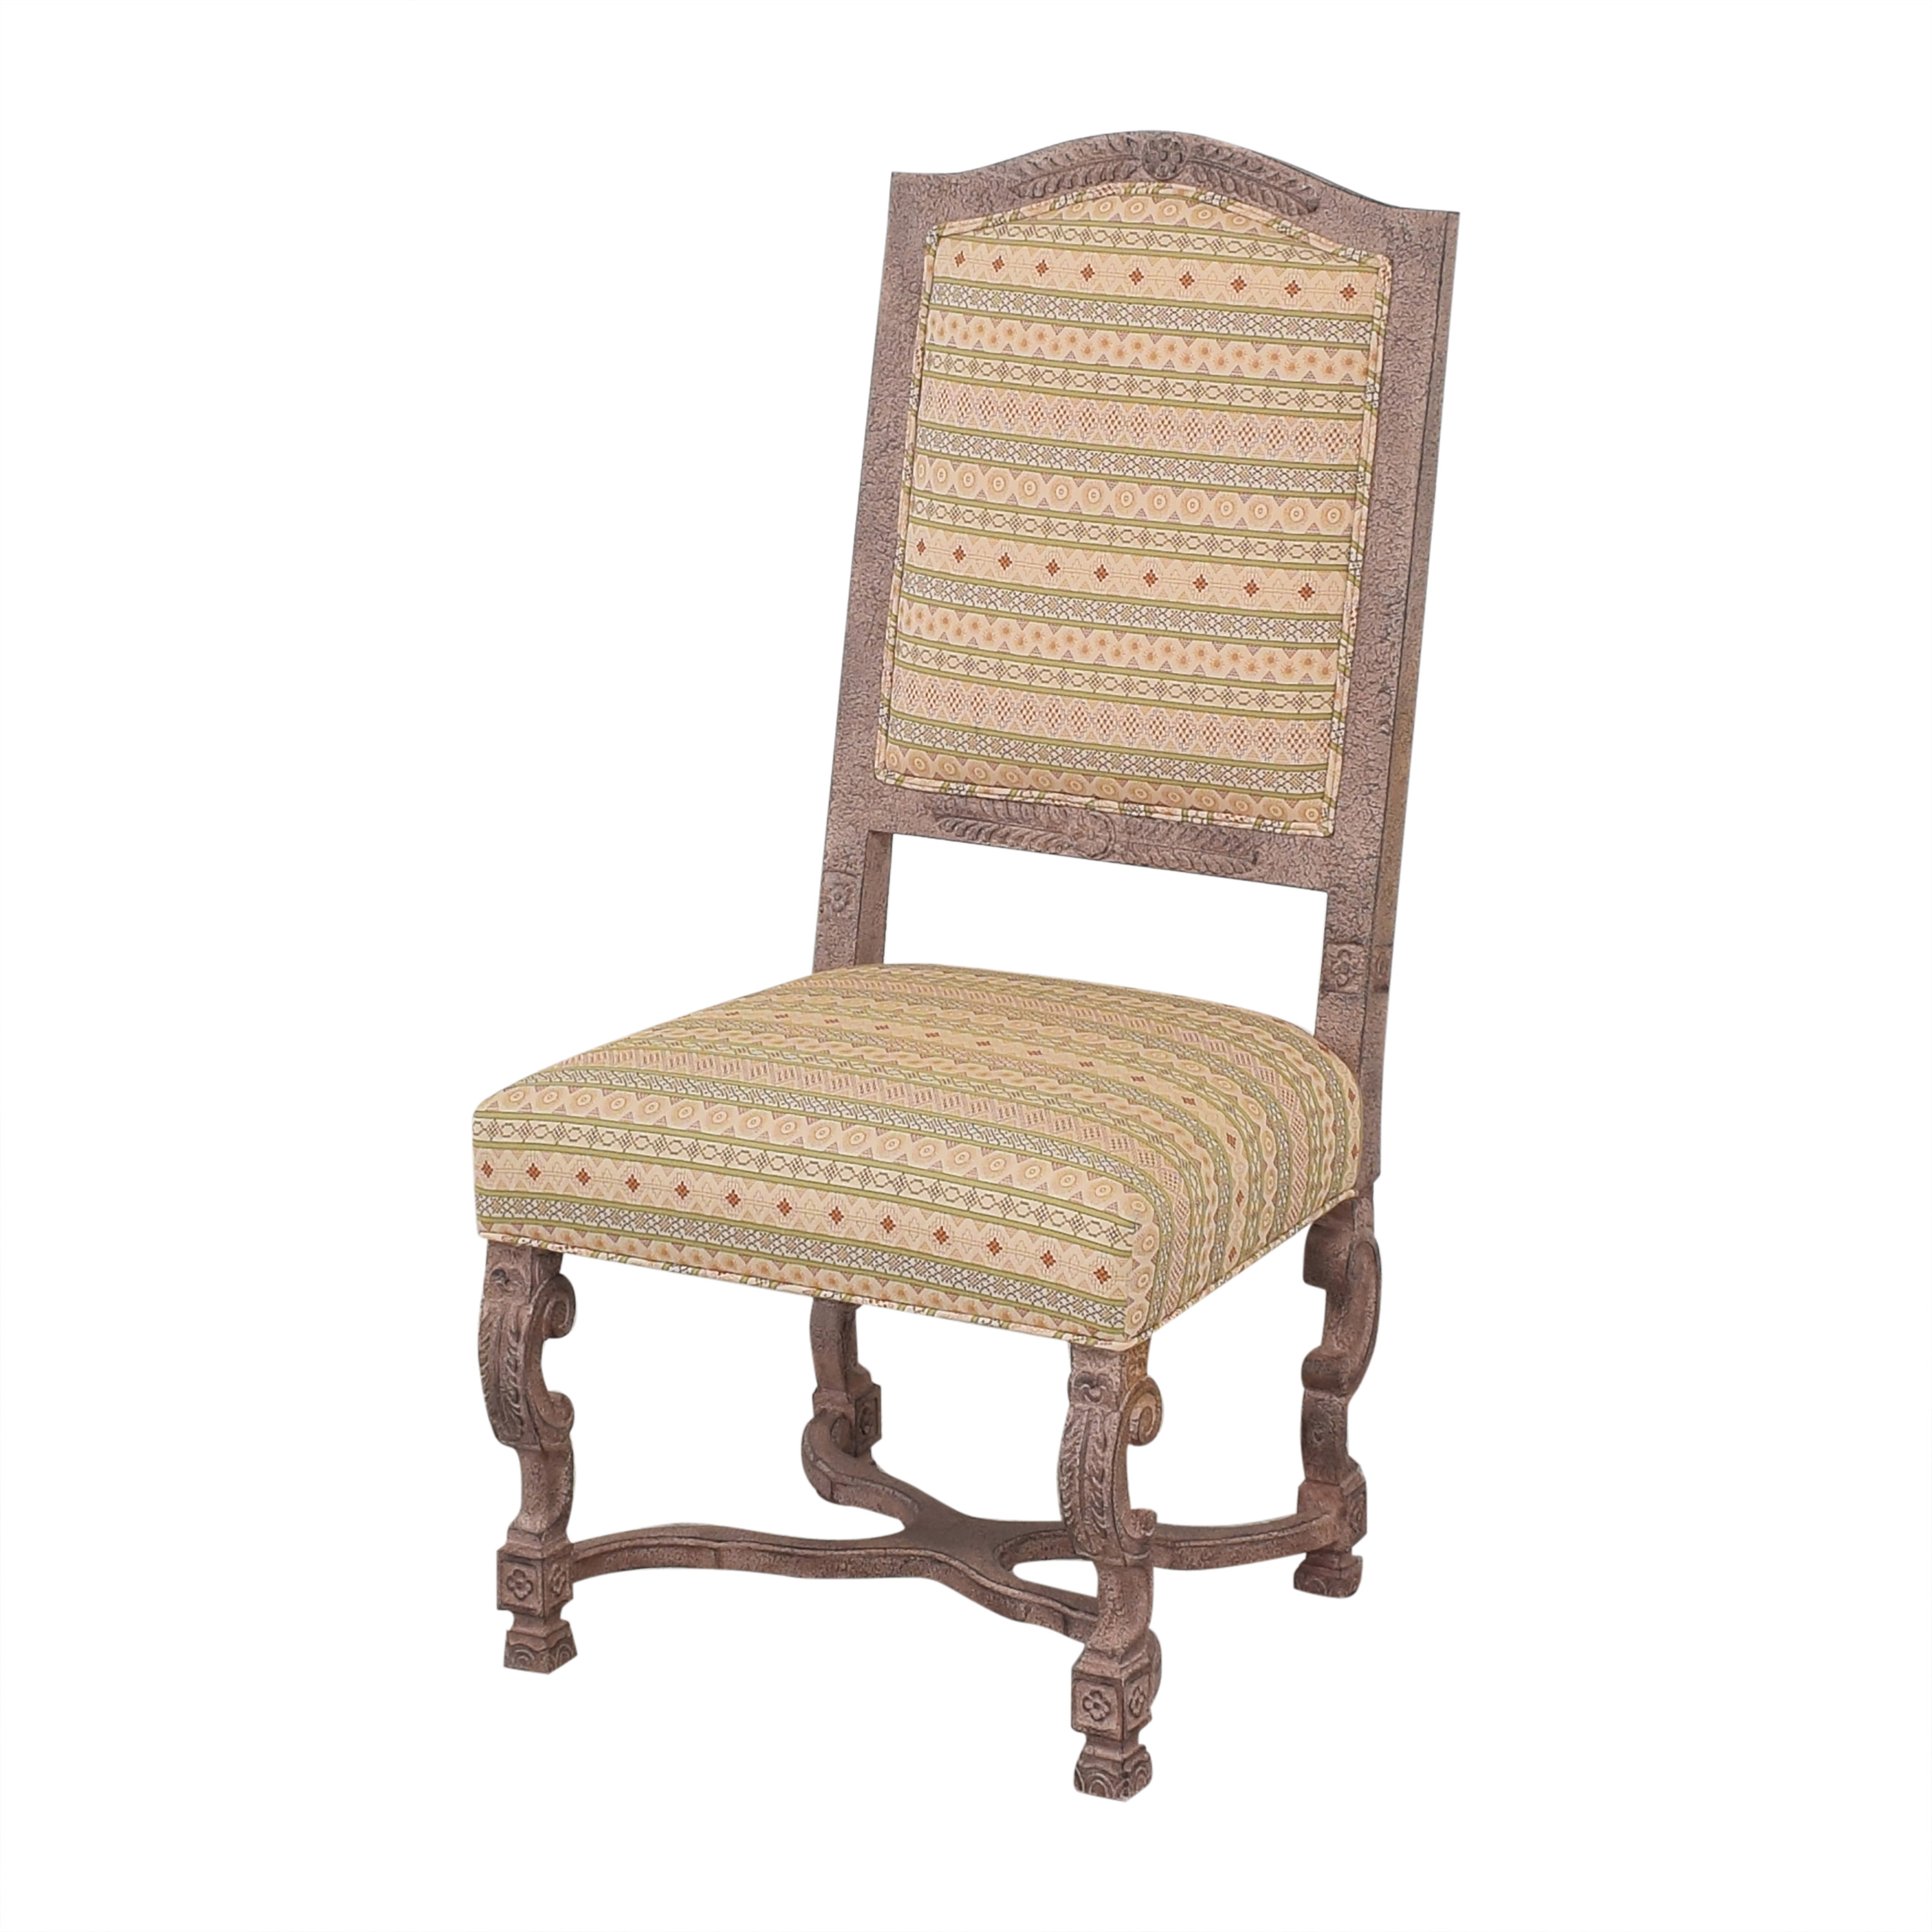 buy Artistic Frame Monarque Dining Chairs Artistic Frame Chairs